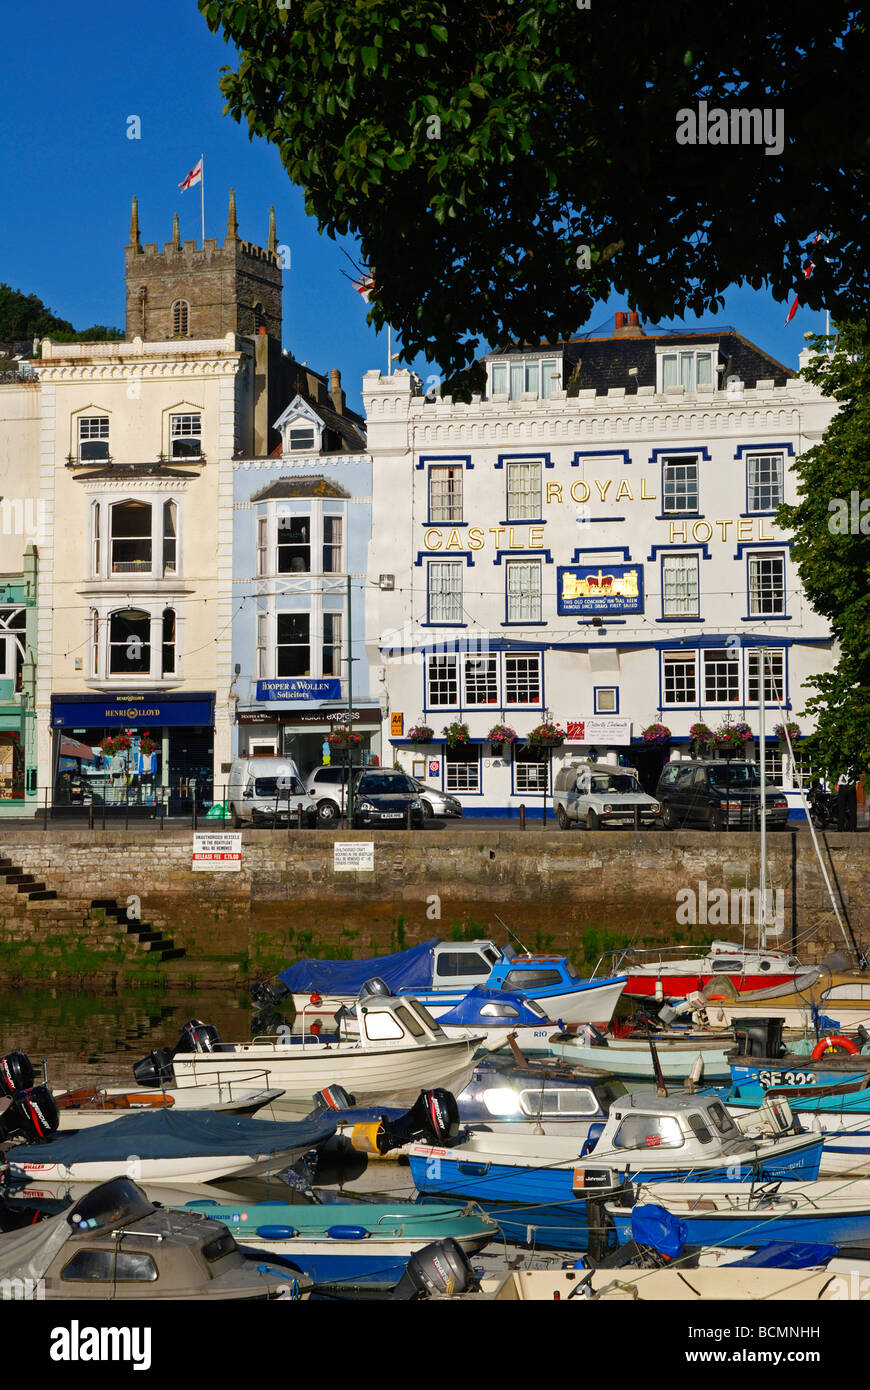 boats in the harbour at dartmouth,devon,uk Stock Photo